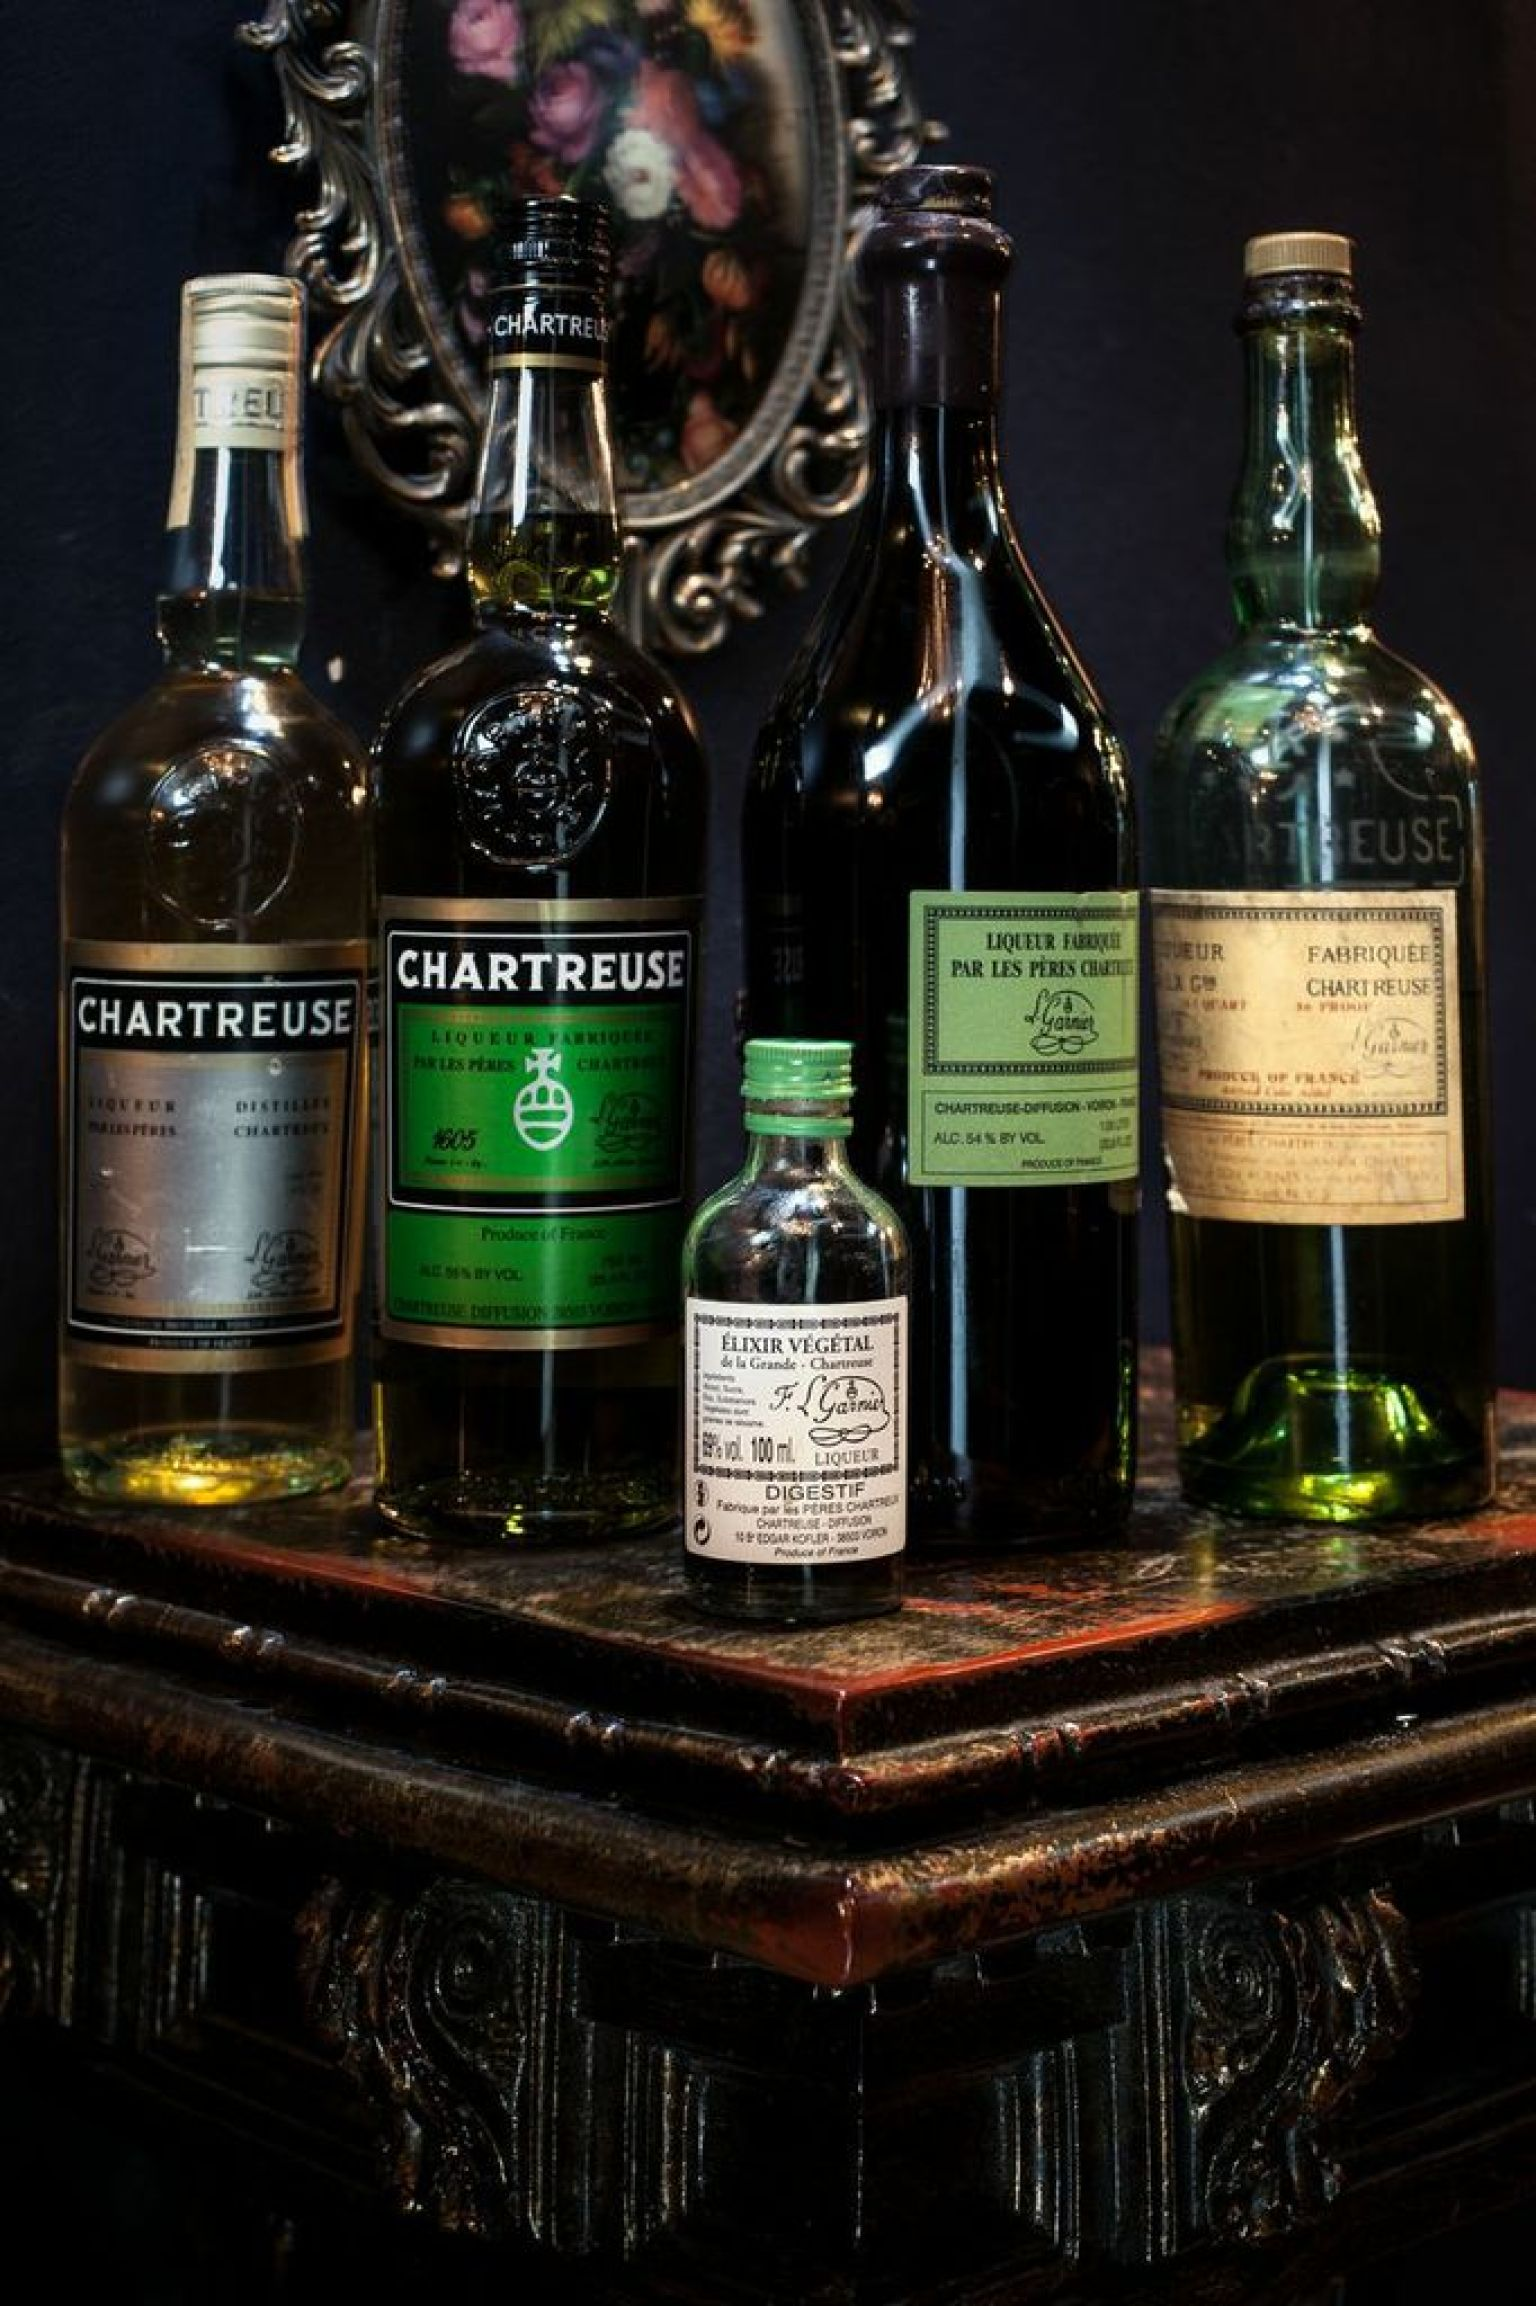 Vintage Liquors Give A Taste Of Decades-Old Spirits (PHOTOS) | HuffPost